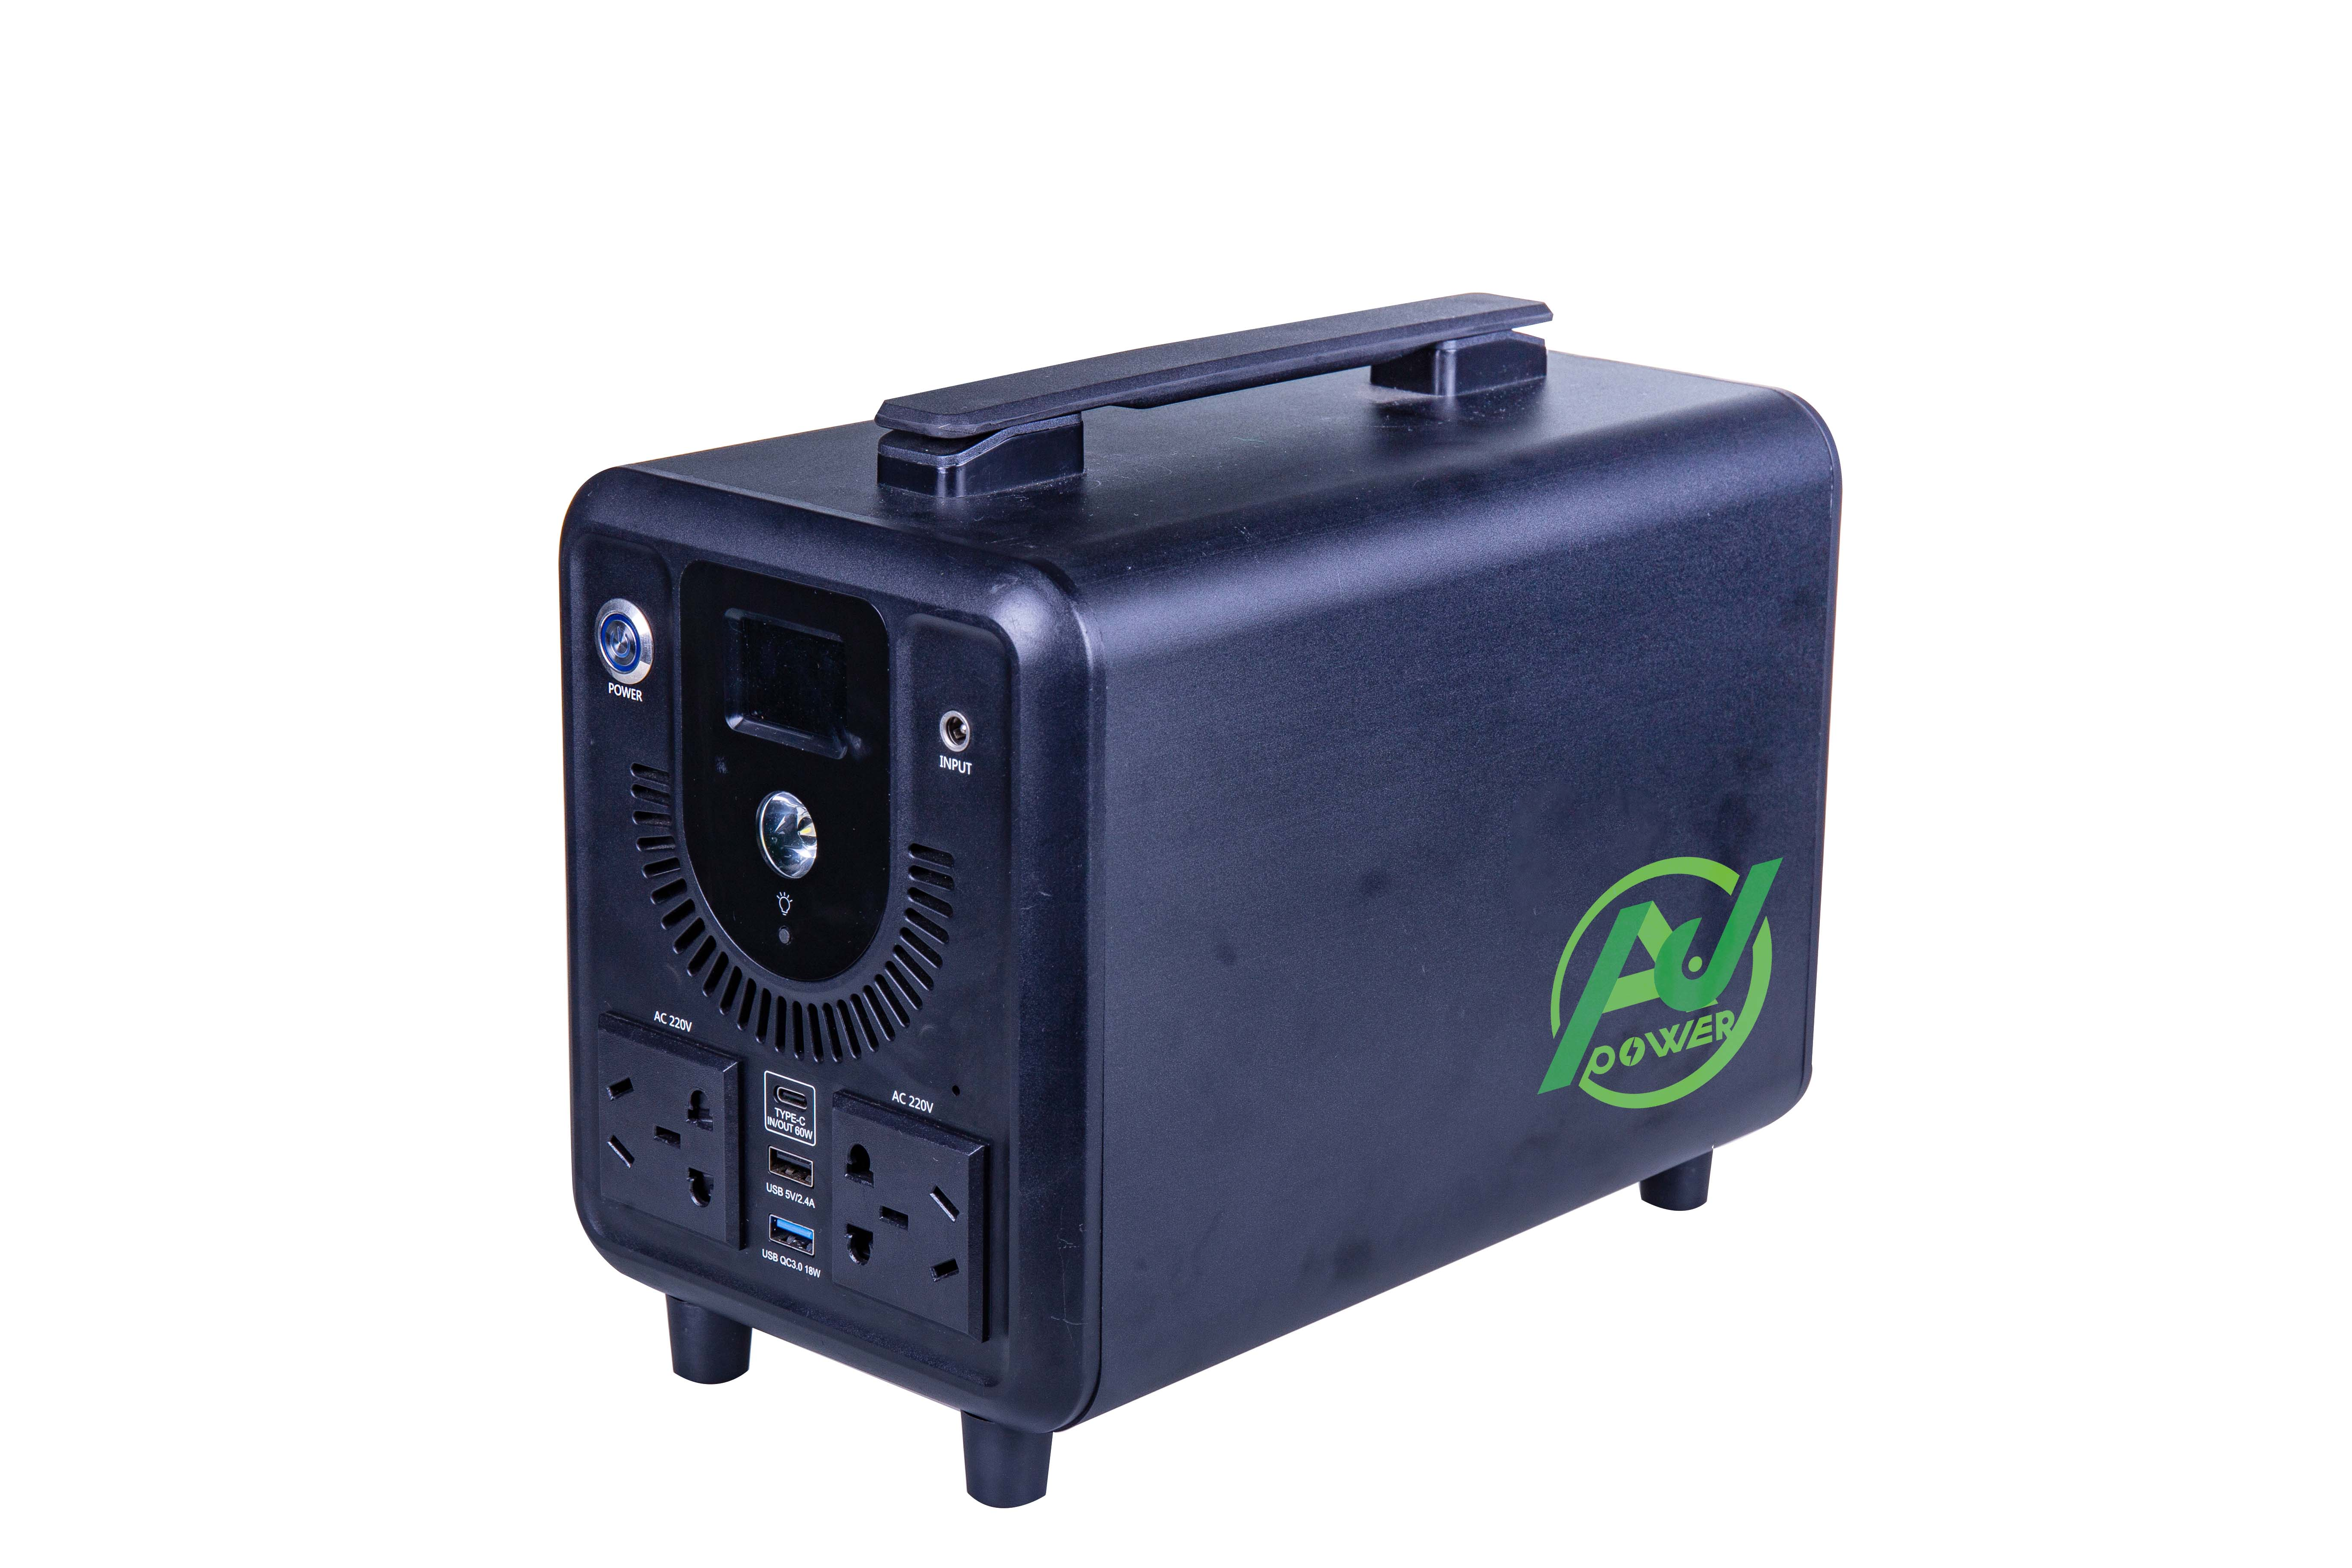 Smart portable power station 300W for outdoor use